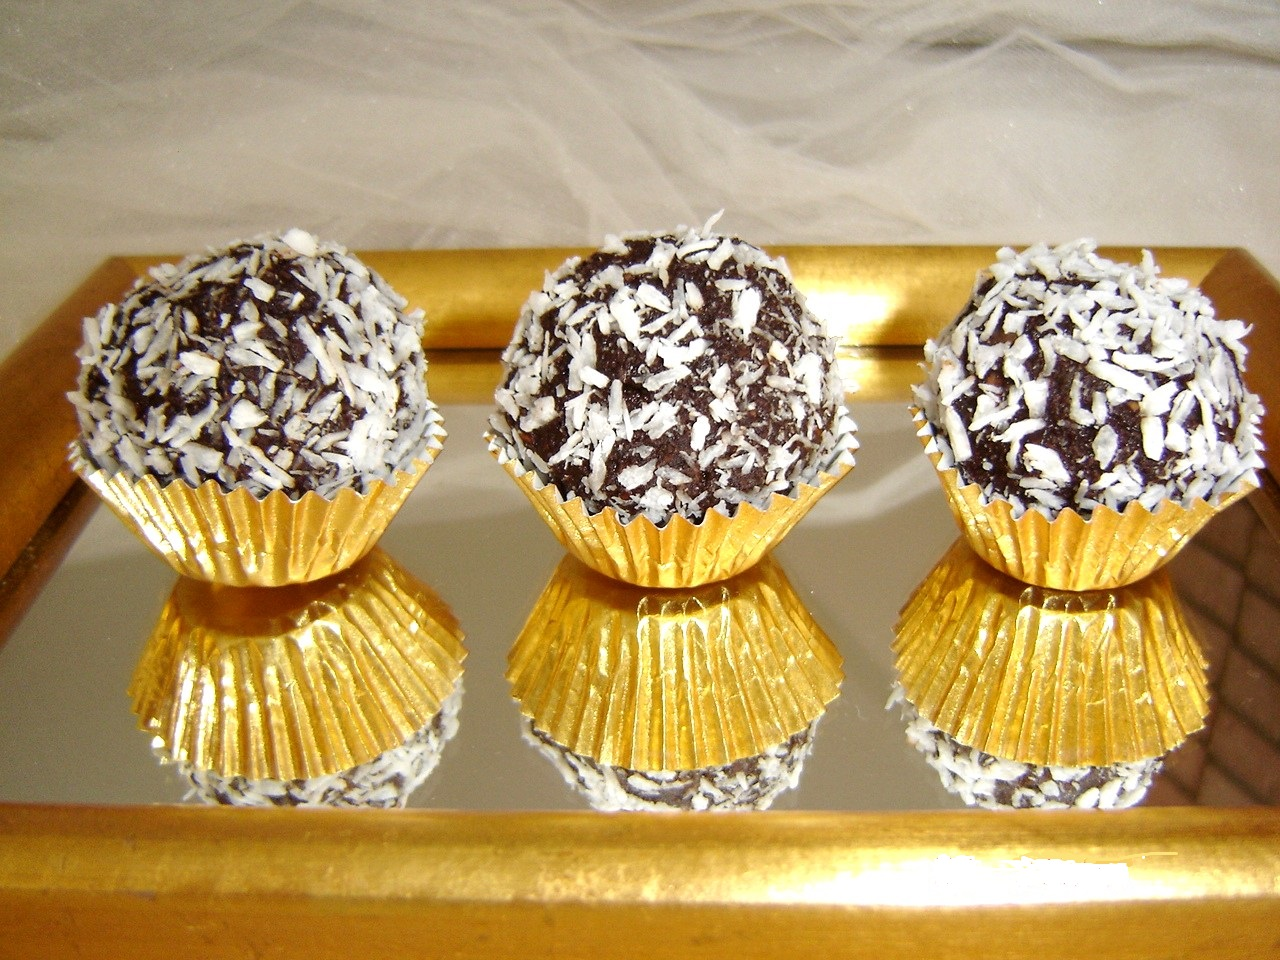 Decadent-Chocolate-Truffles-Dessert